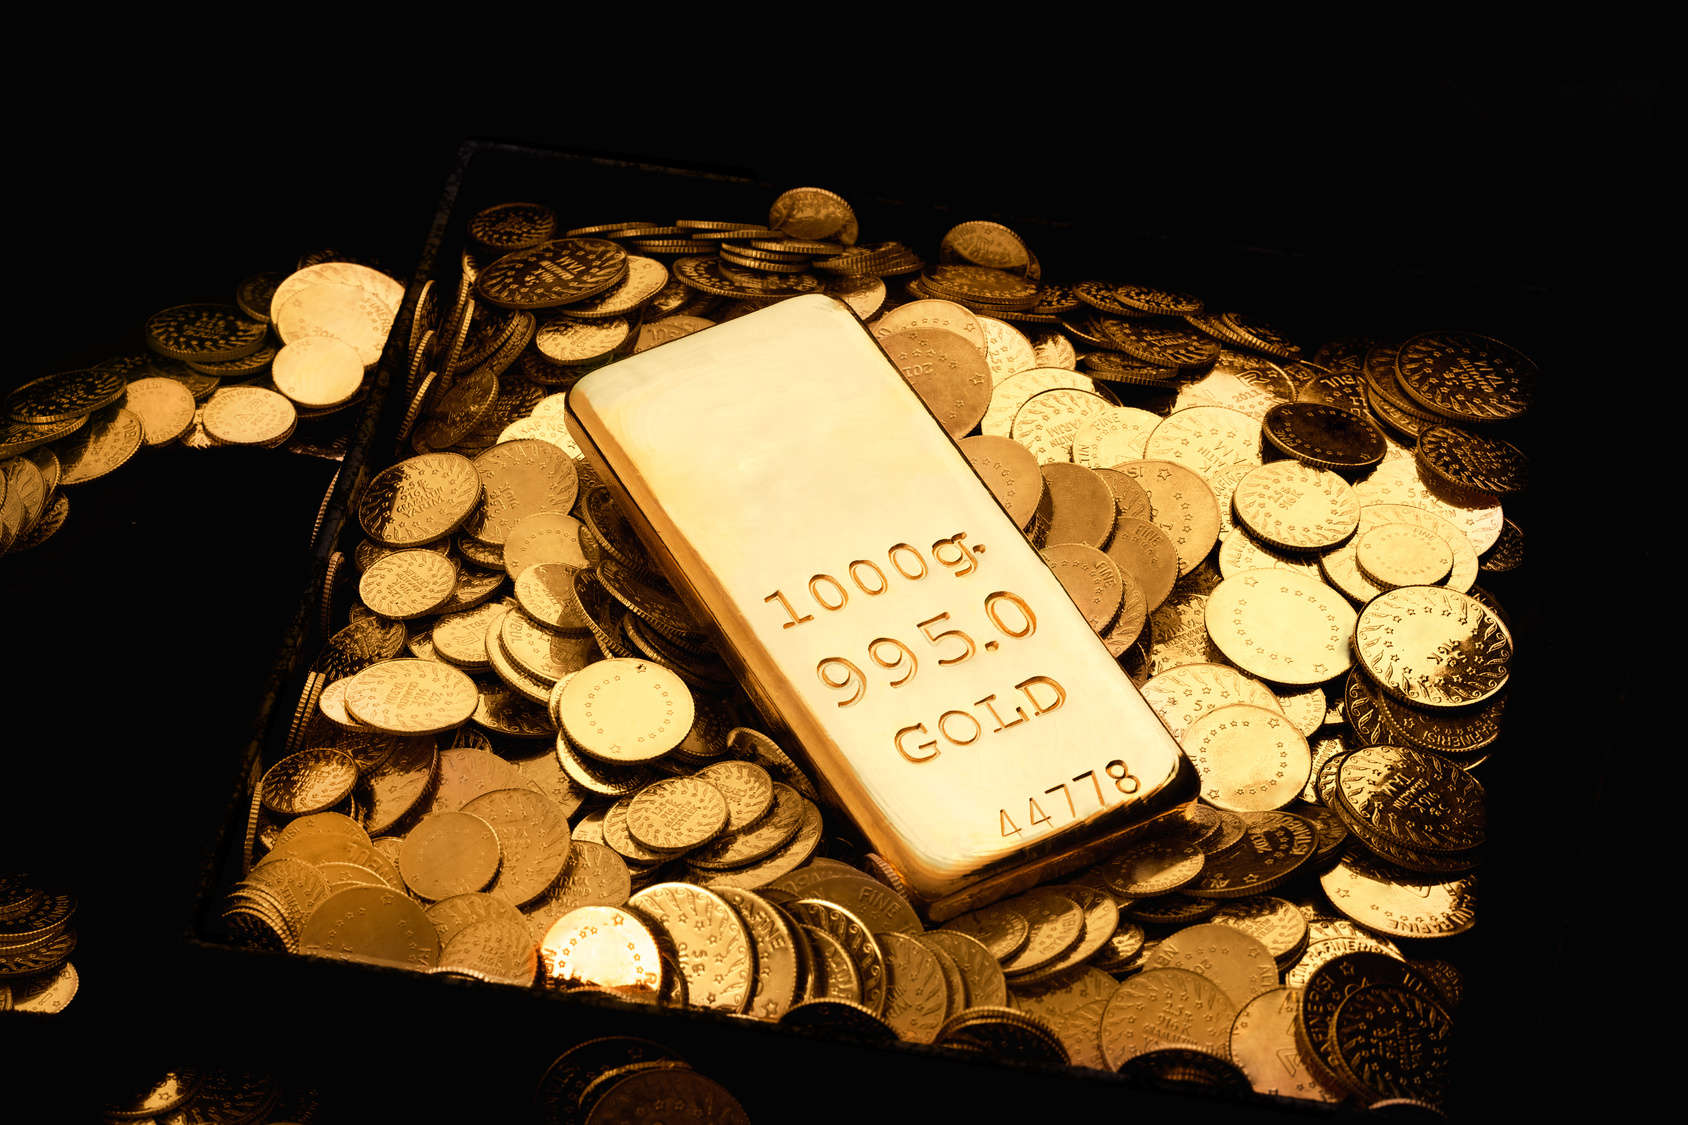 Gold bullion and coins